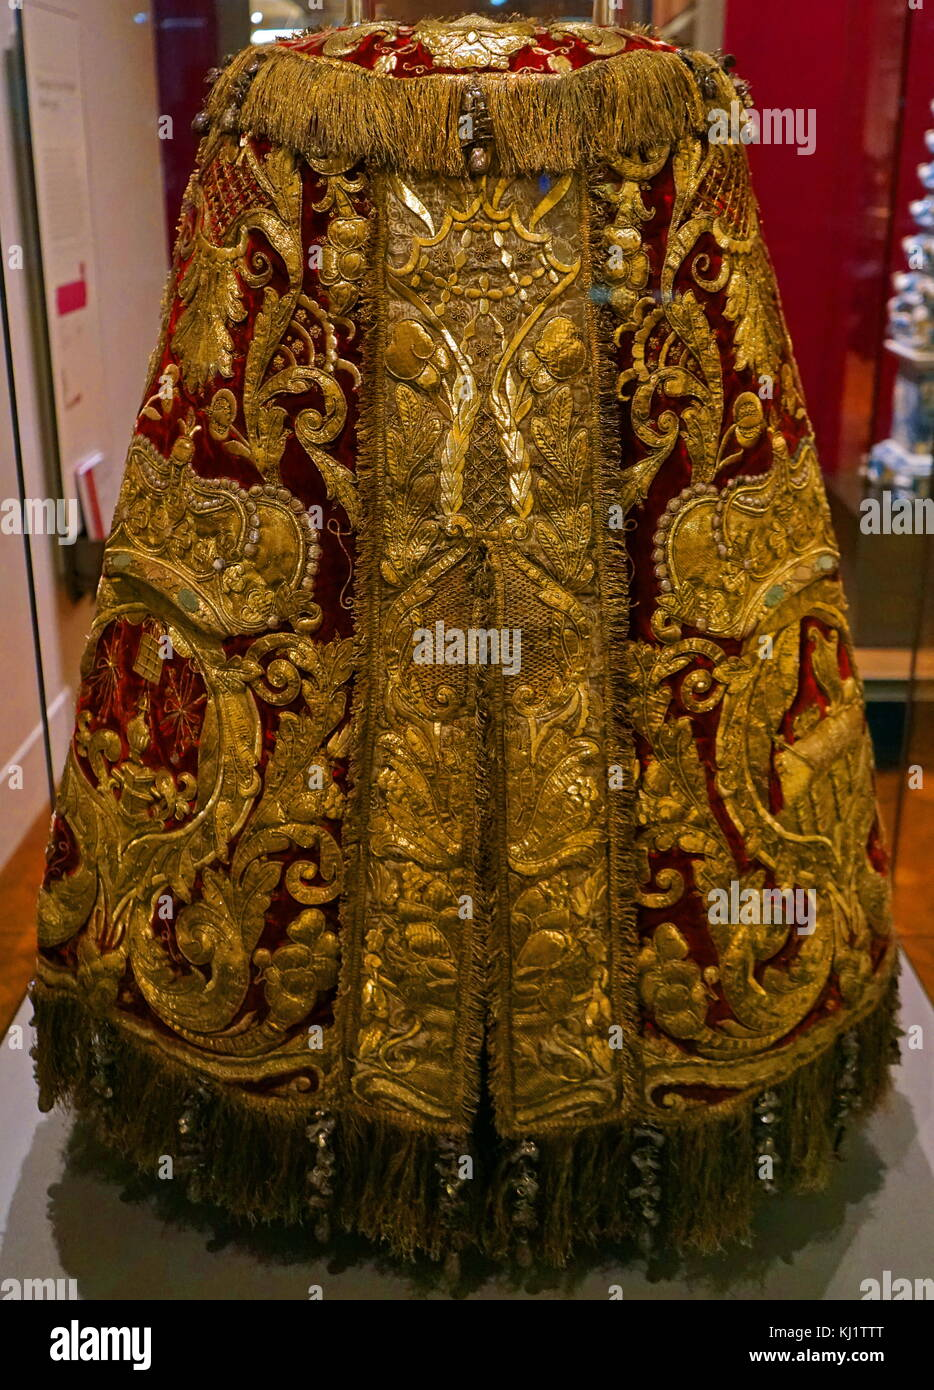 A Dutch Torah mantle which covers the Torah Scroll, which sits within the Holy Ark in a synagogue. Dated 17th Century - Stock Image